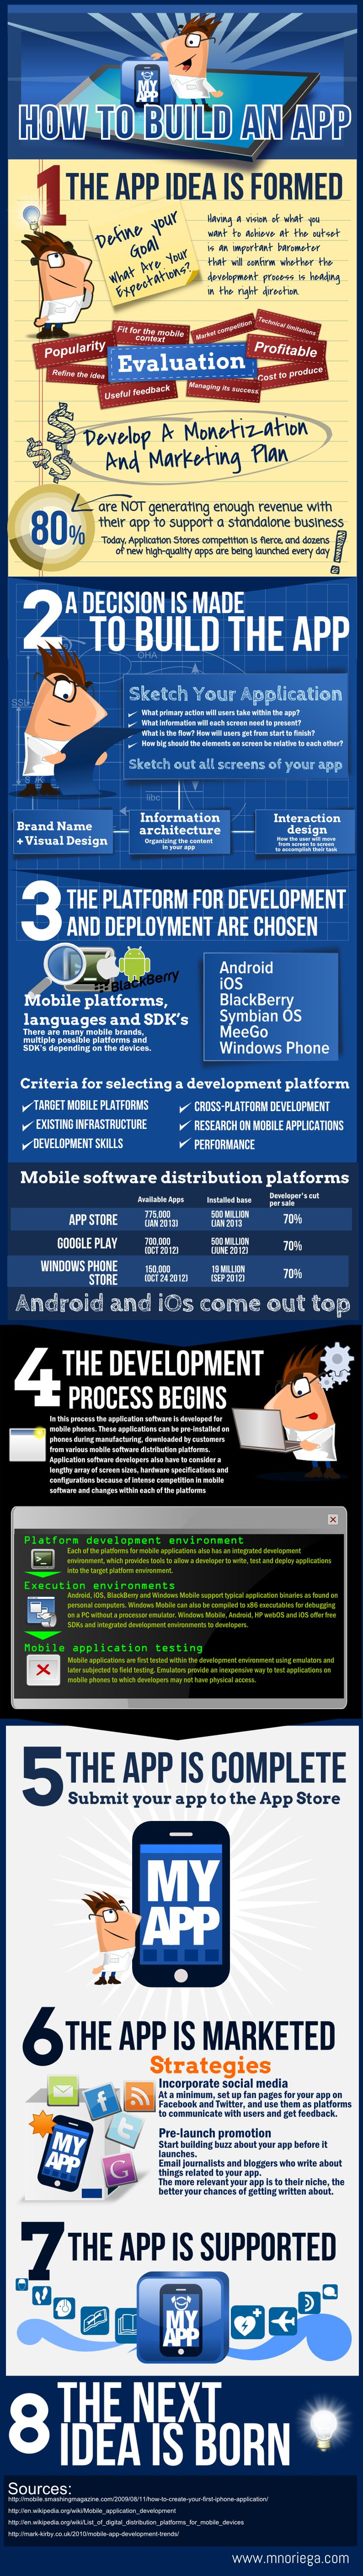 [INFOGRAPHIC]: How to build an APP for entrepreneurial journalists?